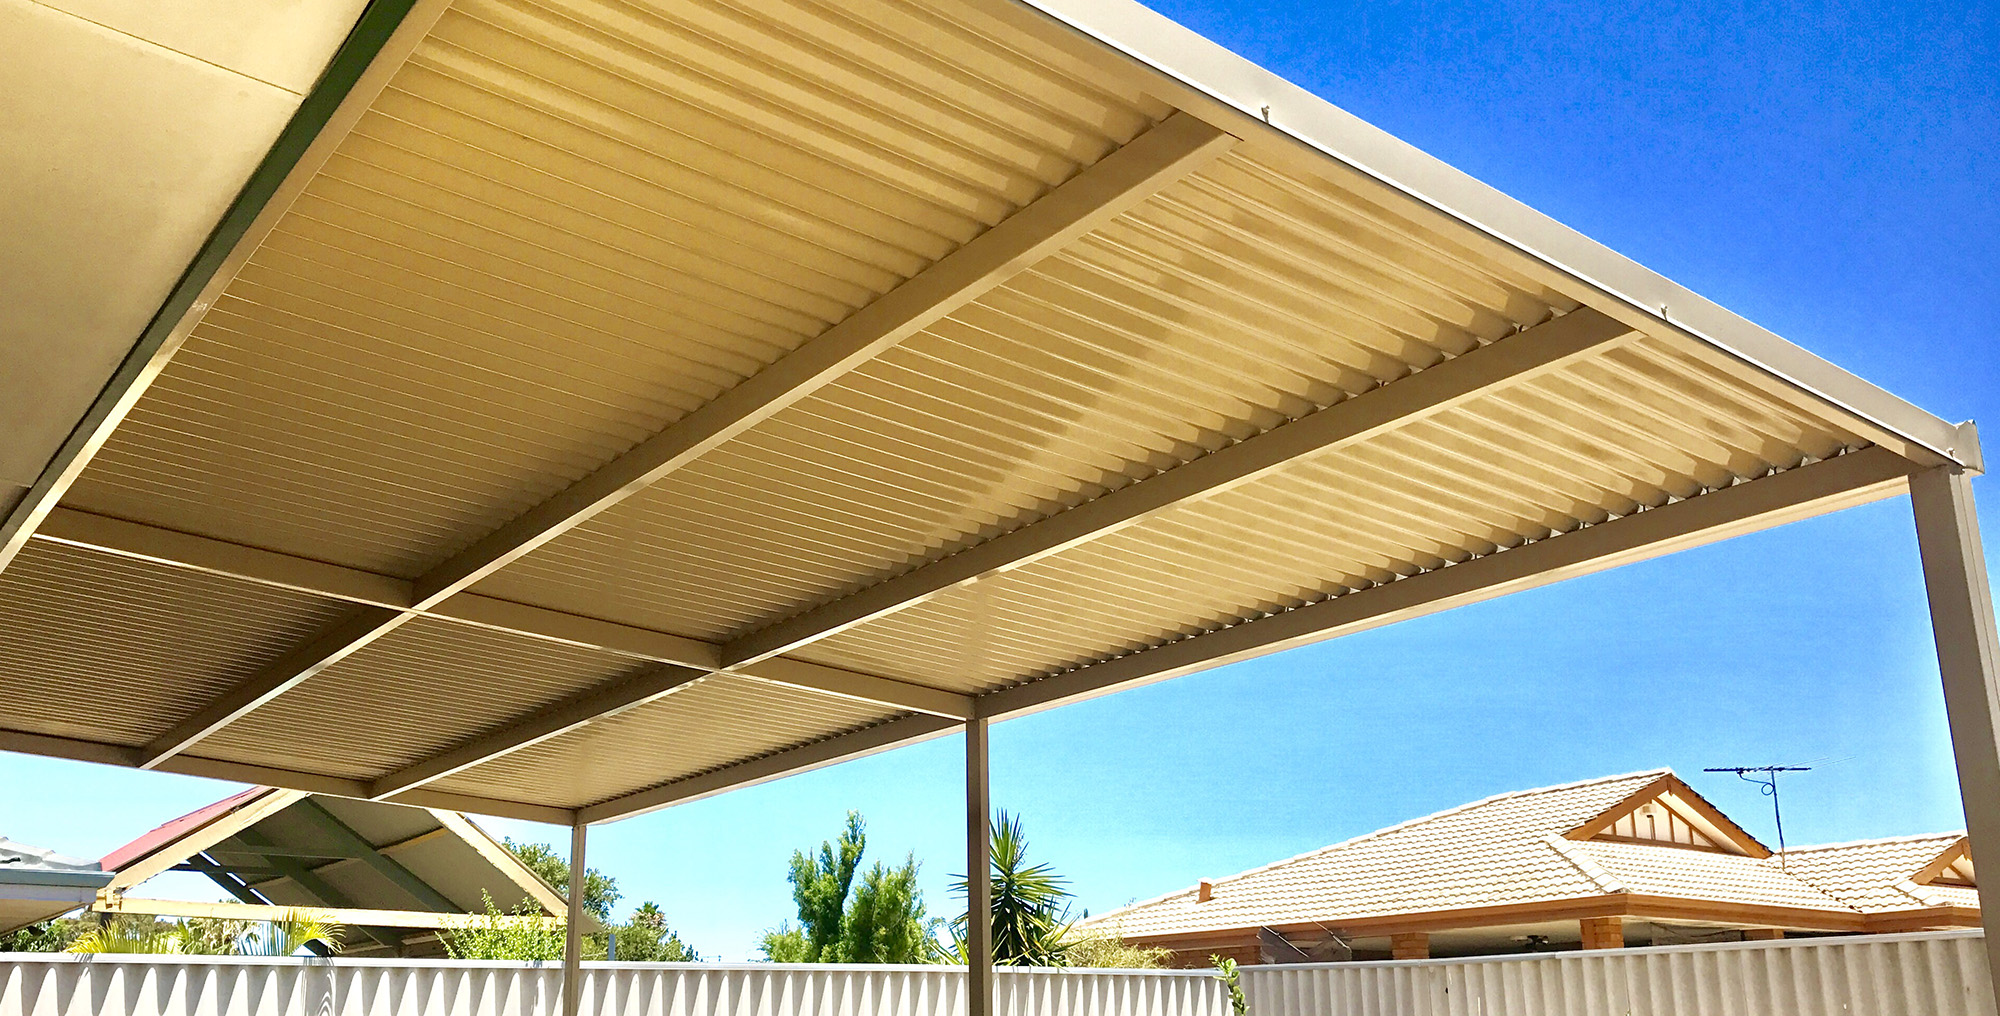 perth-patios-flat-roof.jpg